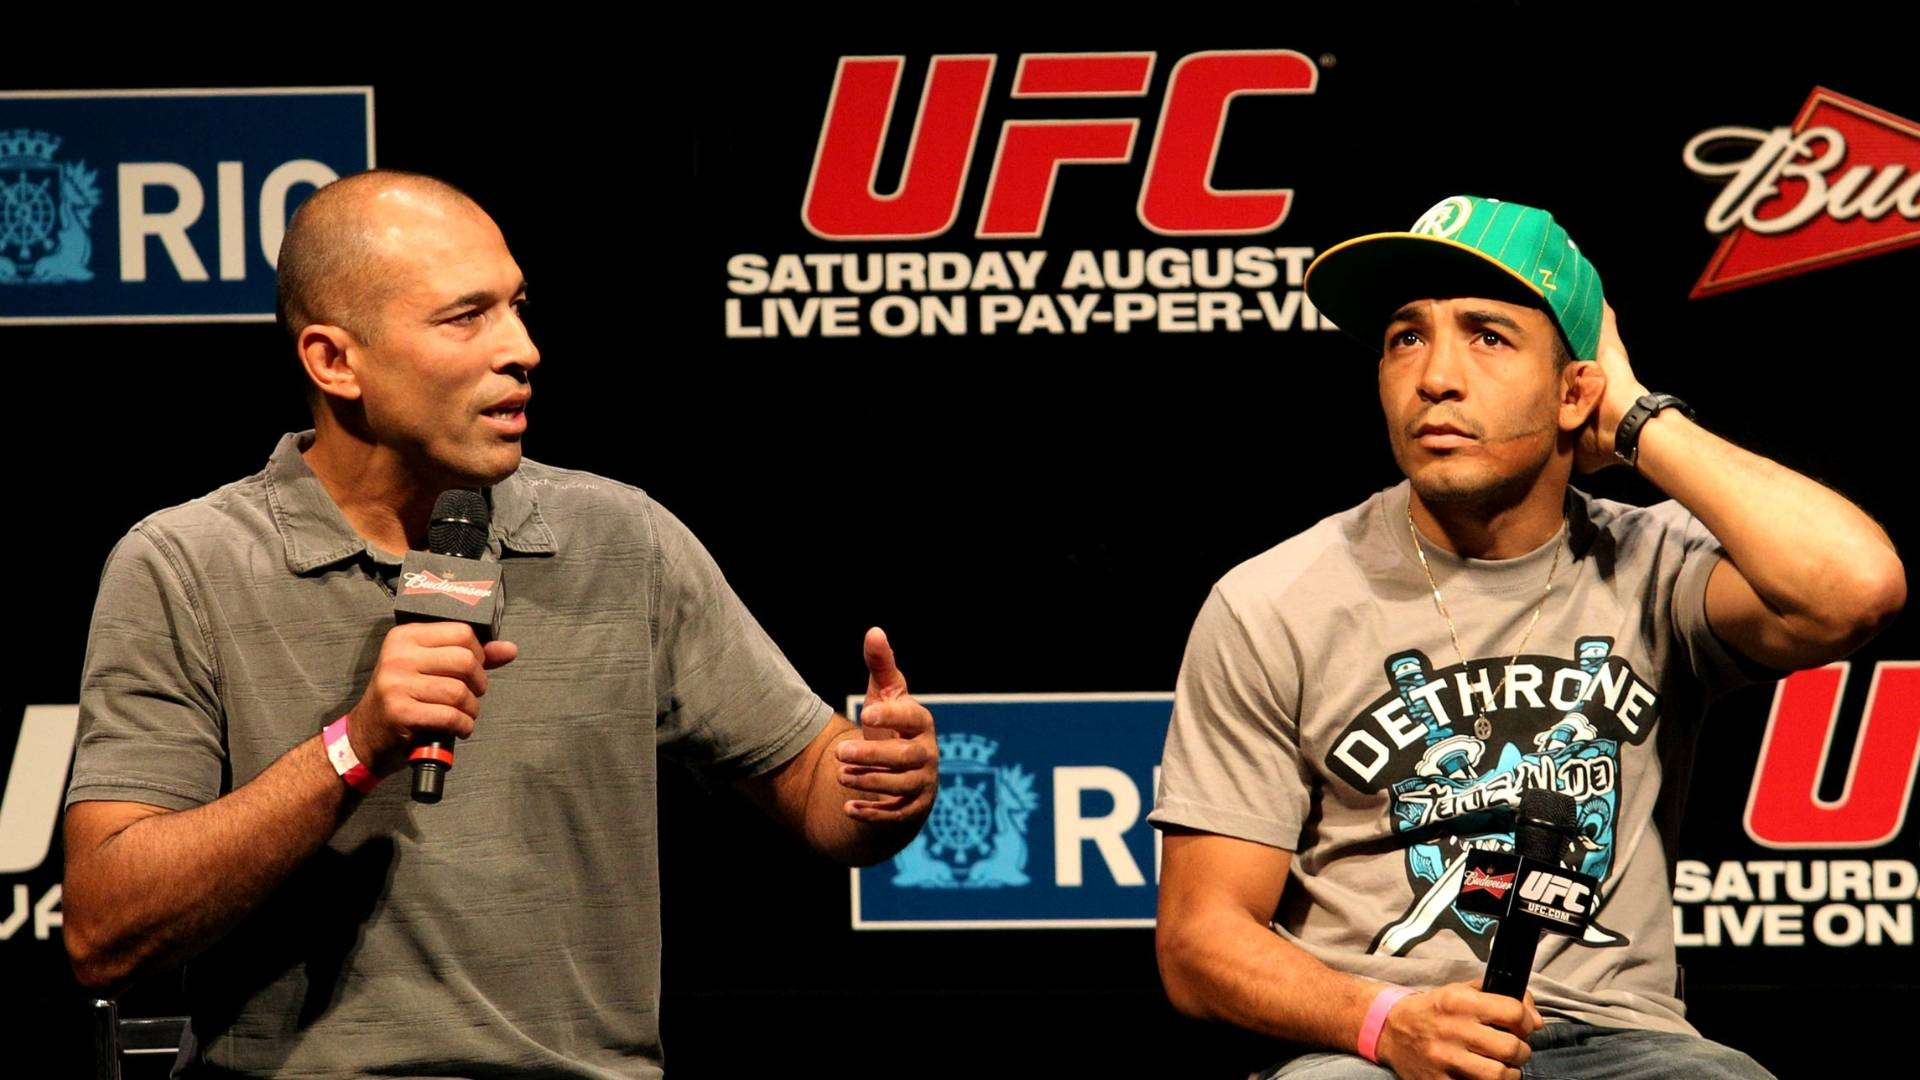 Primeiro grande campeo do UFC, Royce Gracie (esquerda) participa do evento de pesagem do UFC Rio ao lado de Jos Aldo